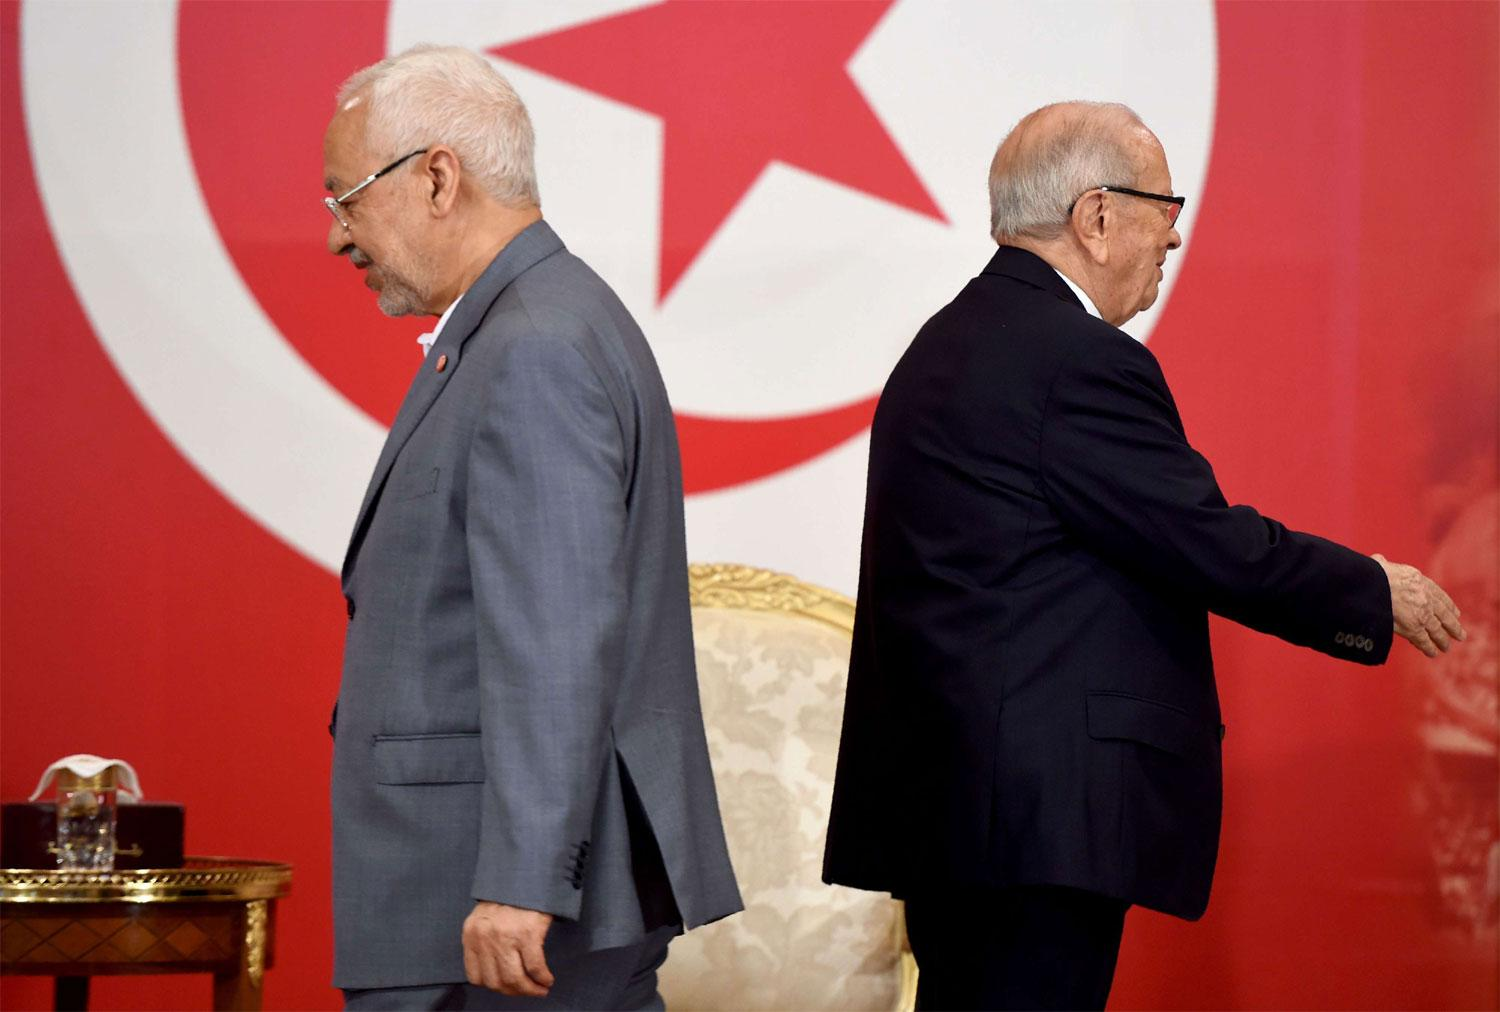 Tunisian President Beji Caid Essebsi (R) and Tunisian leader of Islamist Ennahdha party Rached Ghannouchi